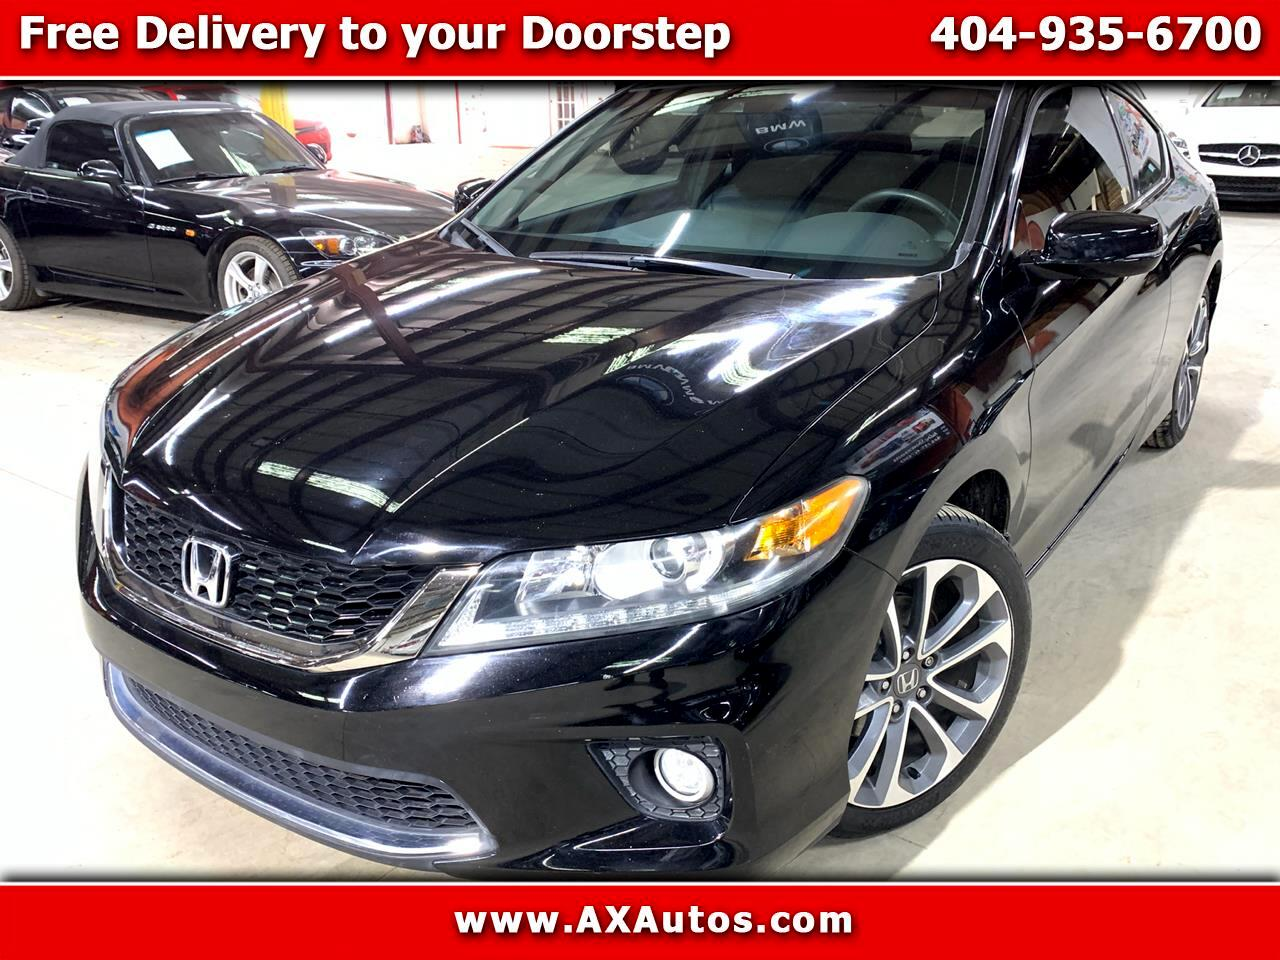 2013 Honda Accord EX-L V6 Coupe MT